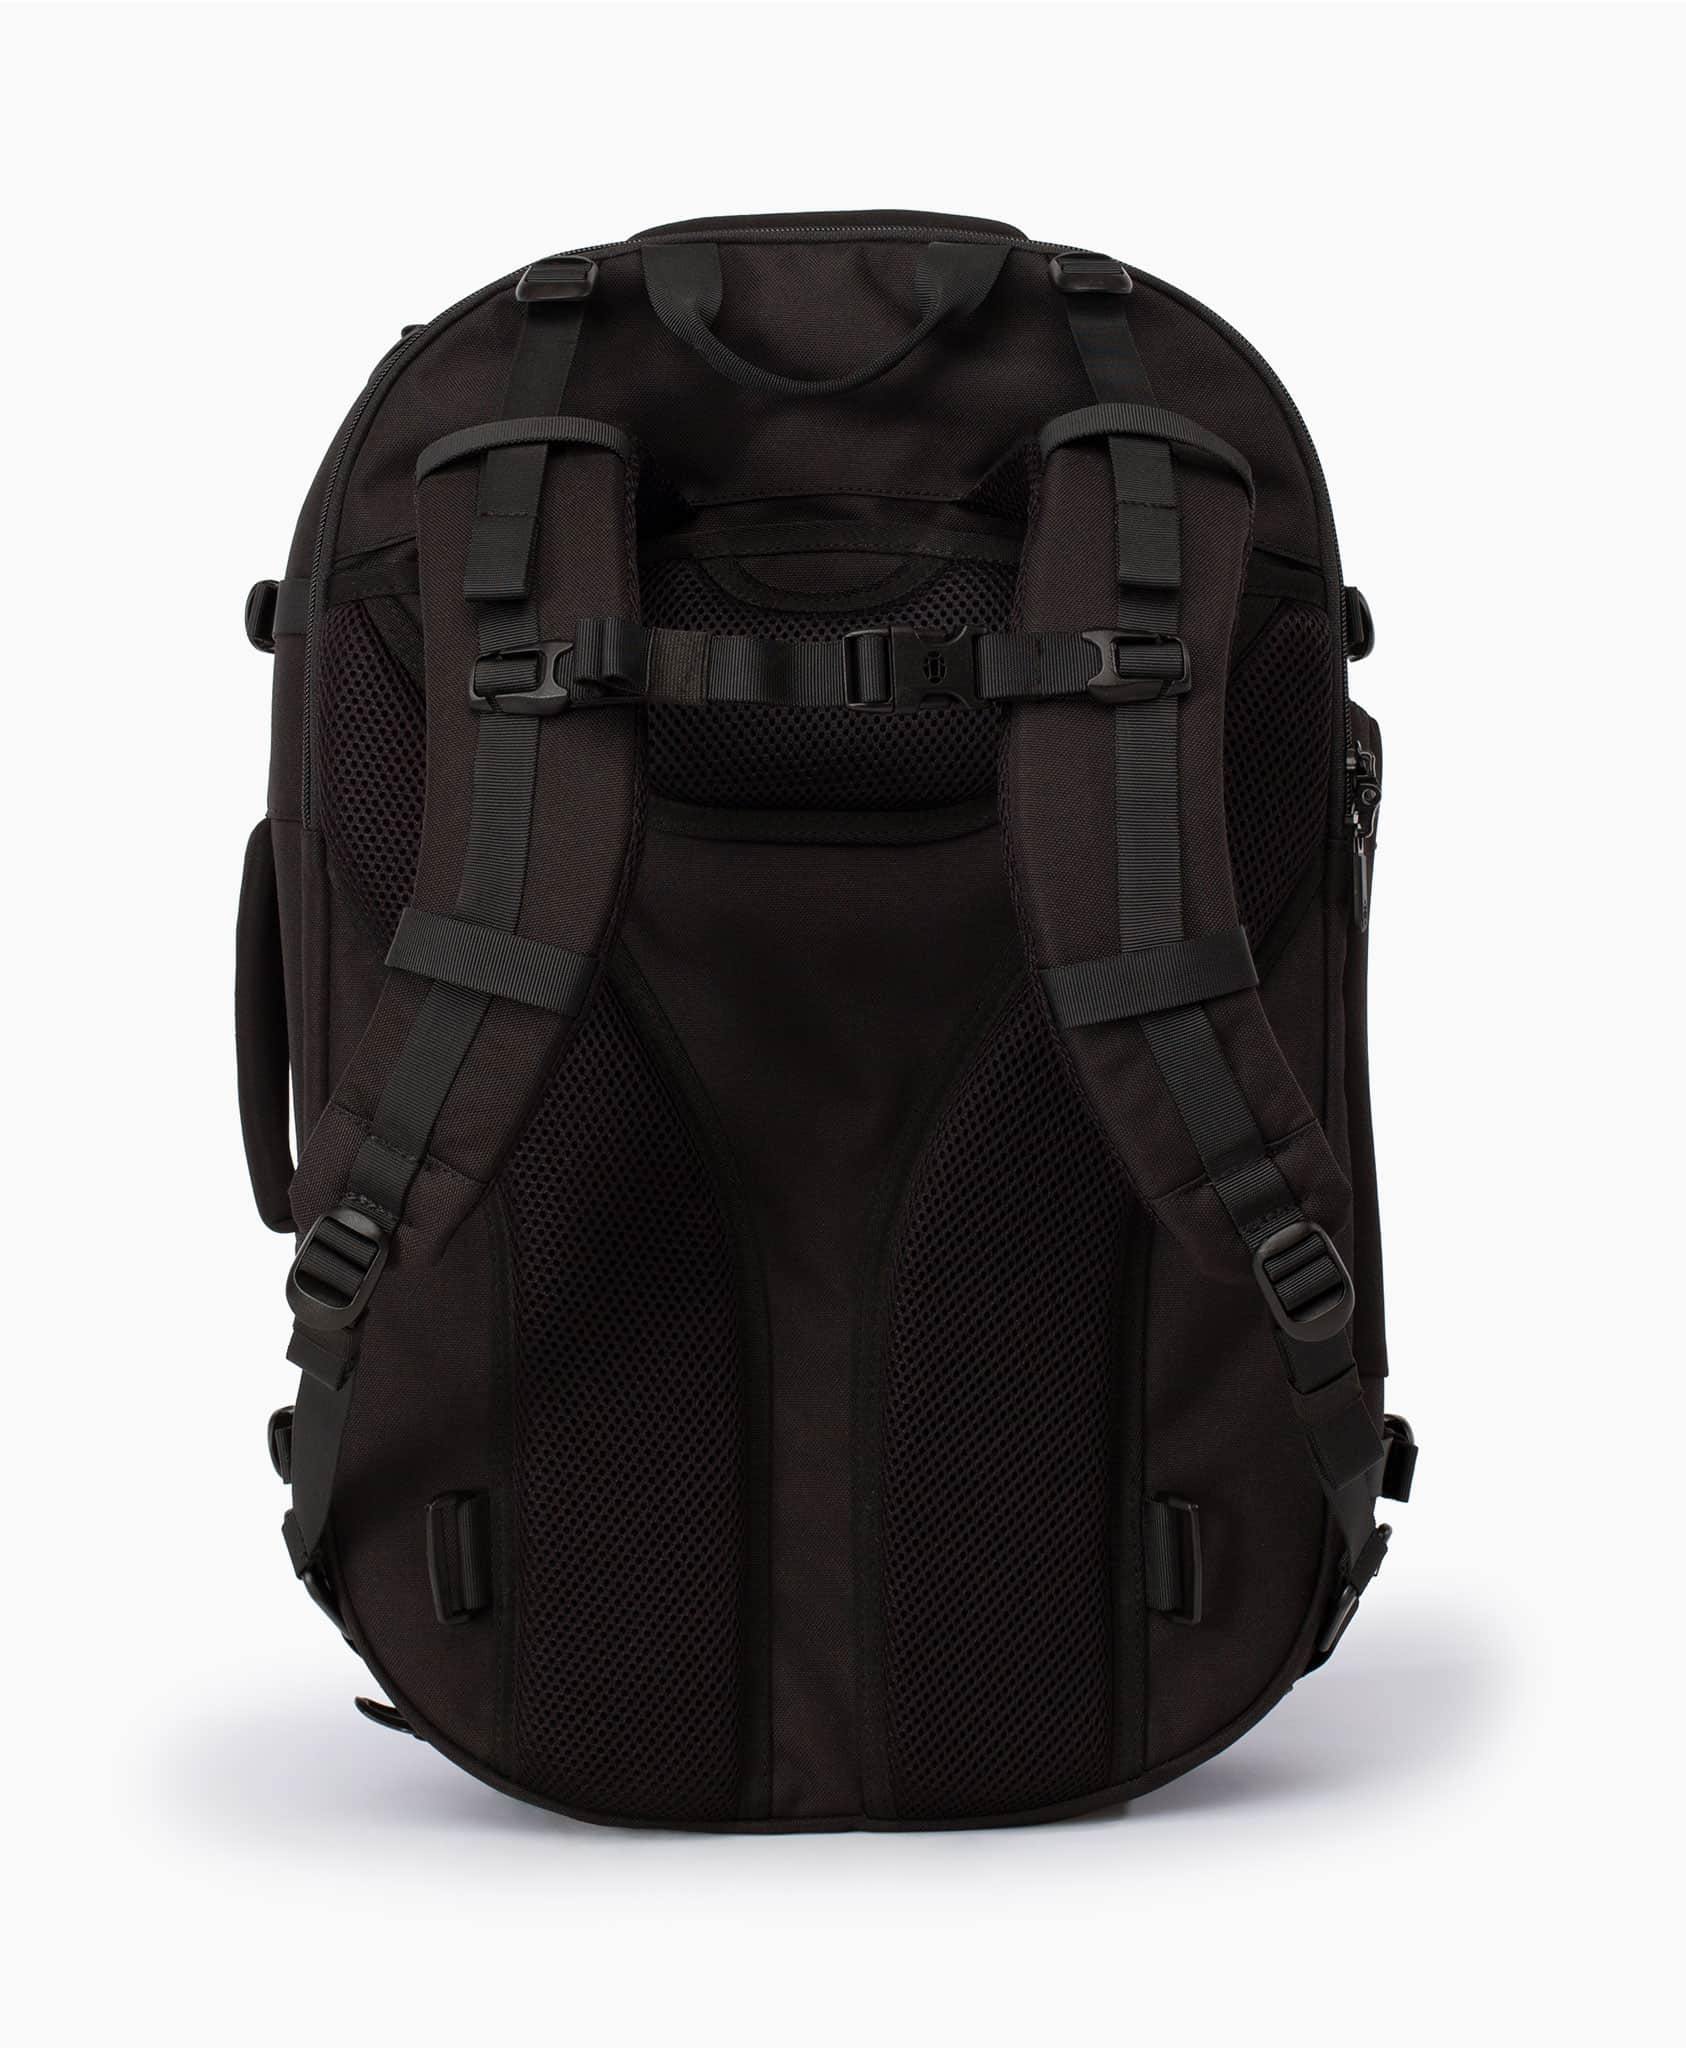 product/ Remove the hip belt if you prefer to travel without it